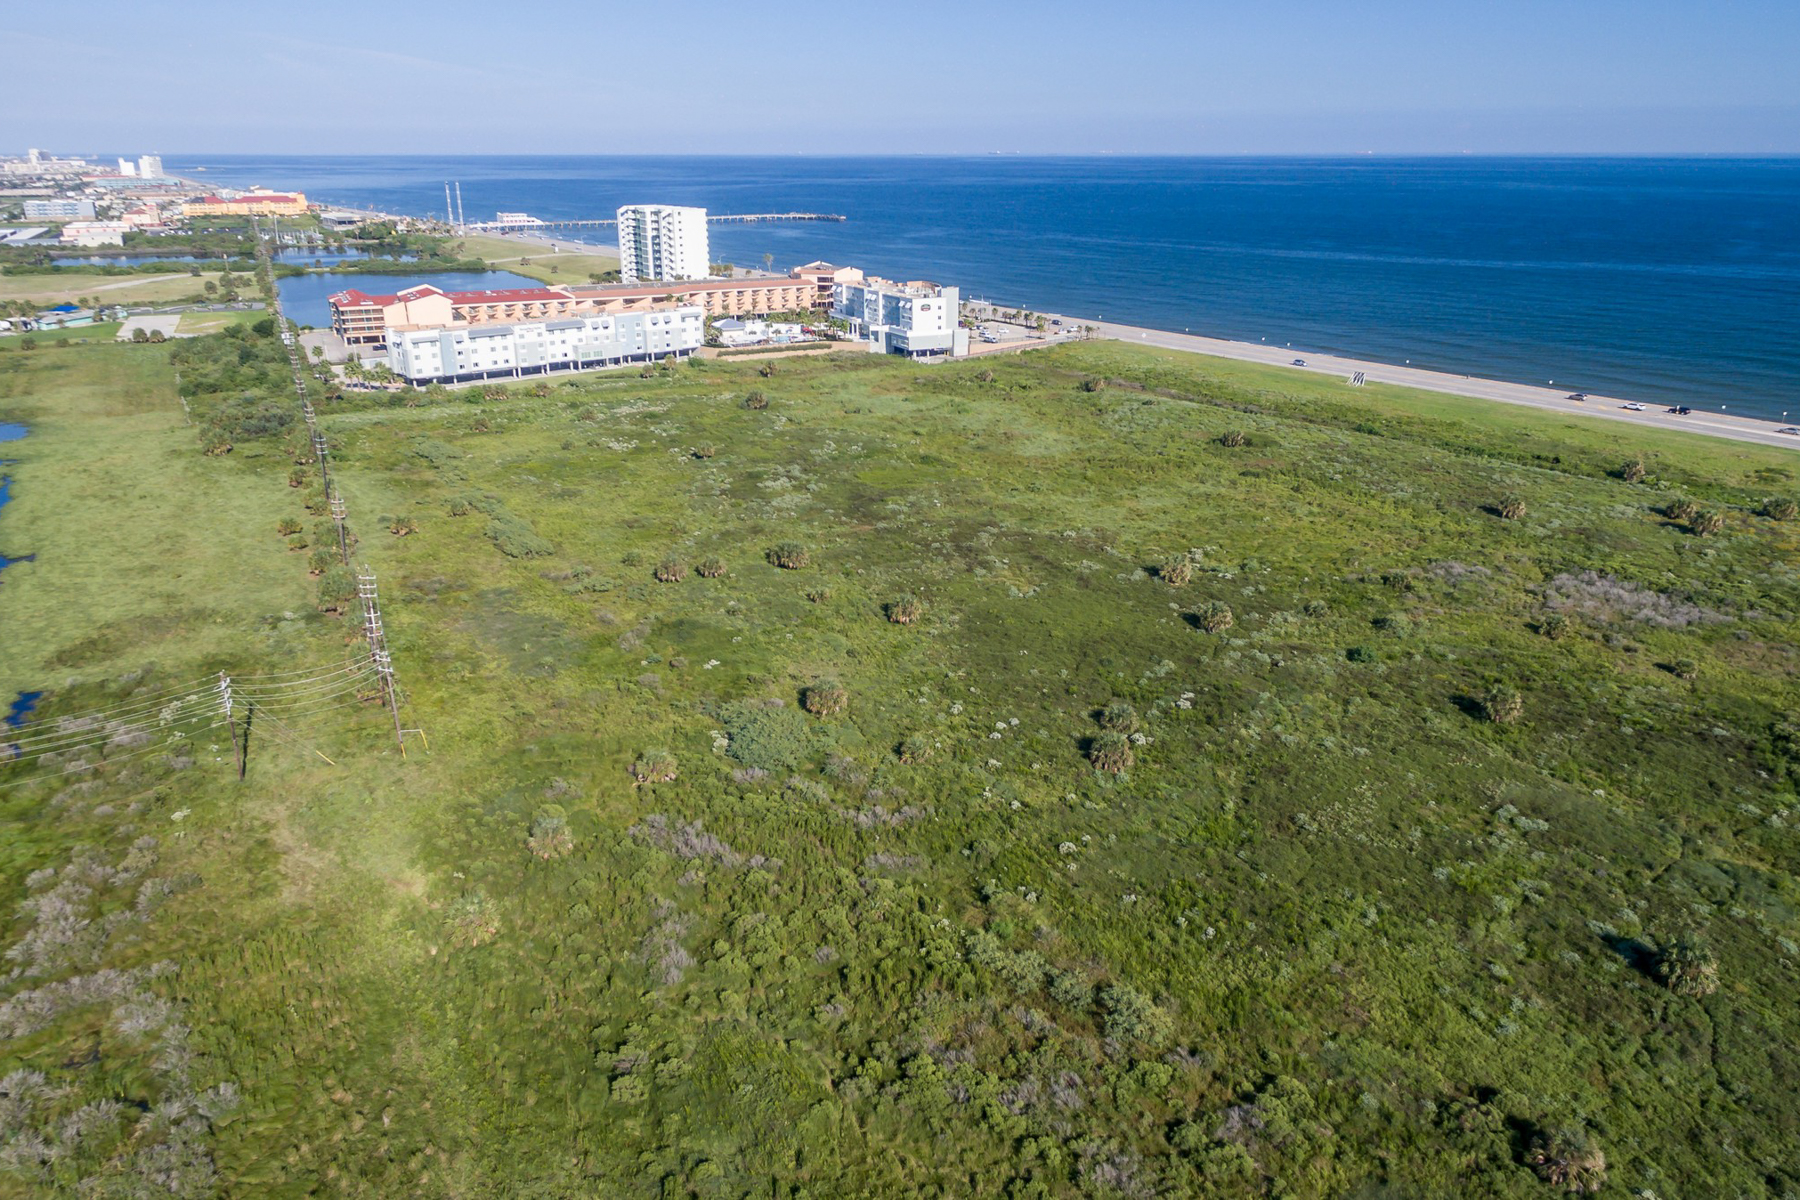 Land for Sale at 42+ Acres Commercial Tracts on Galveston Island 51.67 +/- Acres - Galveston Co Galveston, Texas 77554 United States